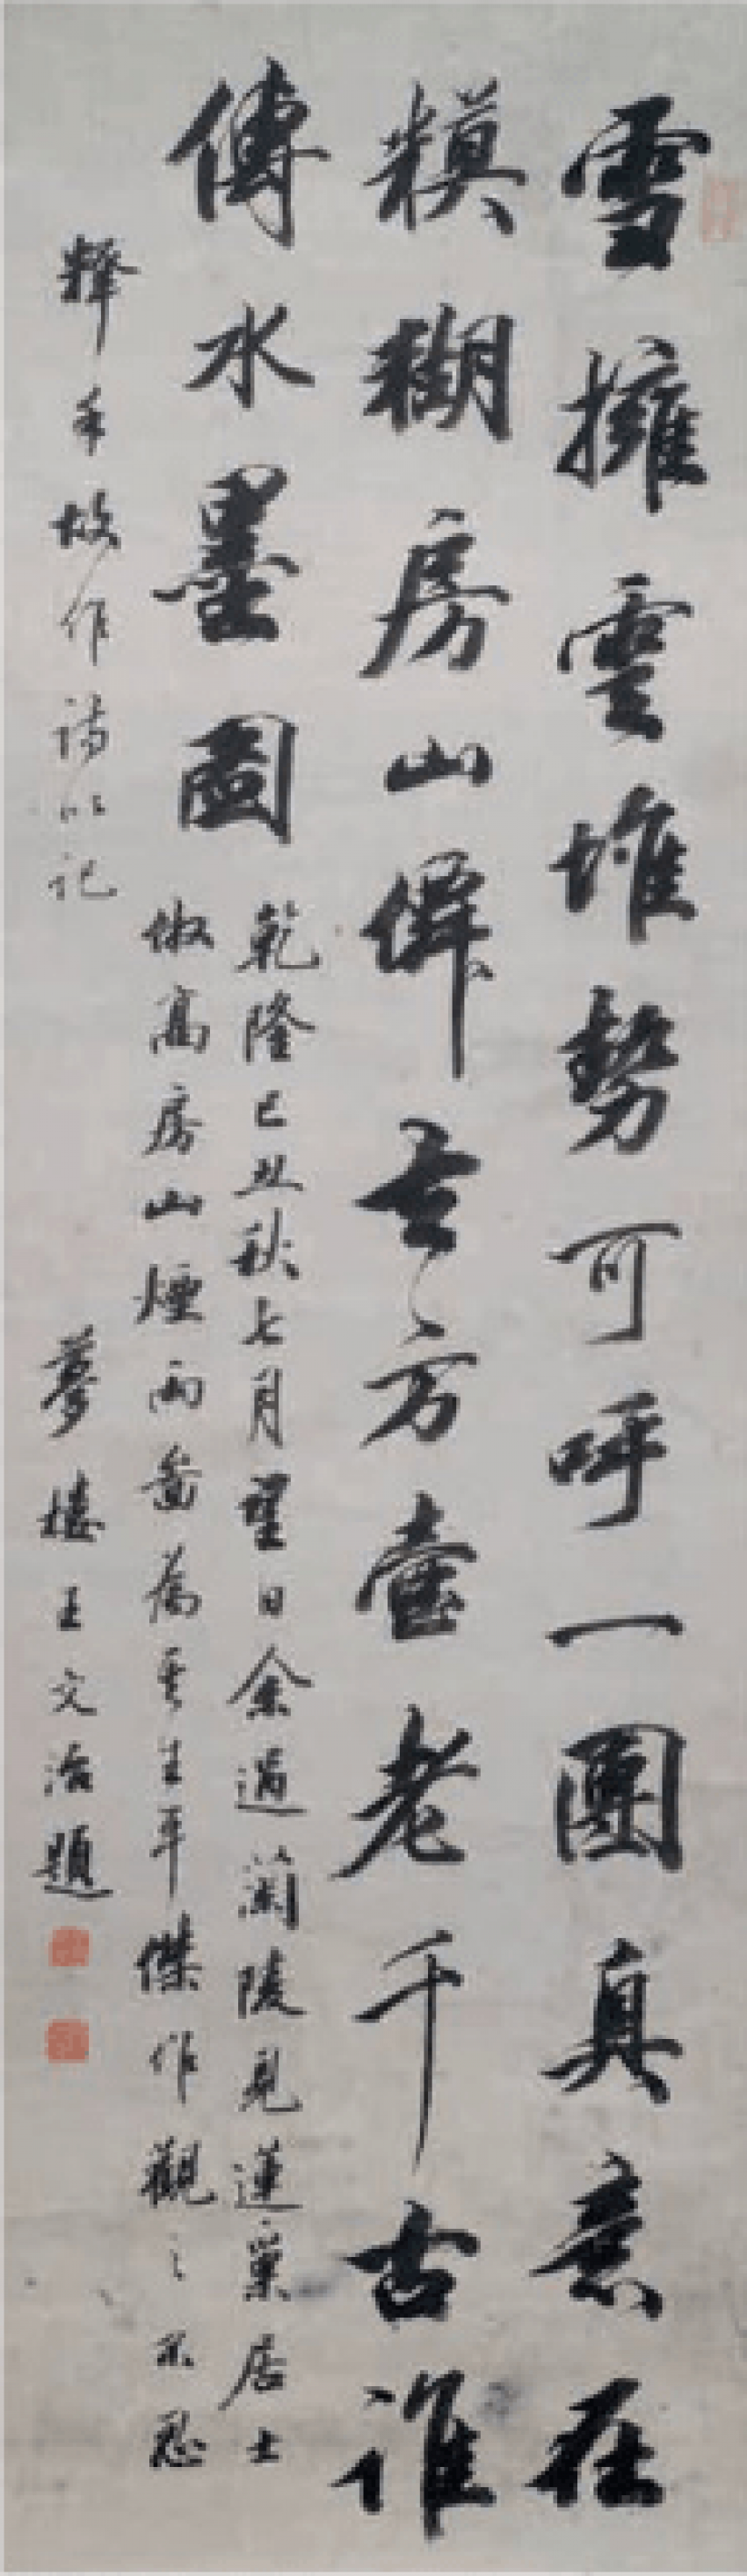 THE STYLE OF WANG WENZHI (1730-1802)